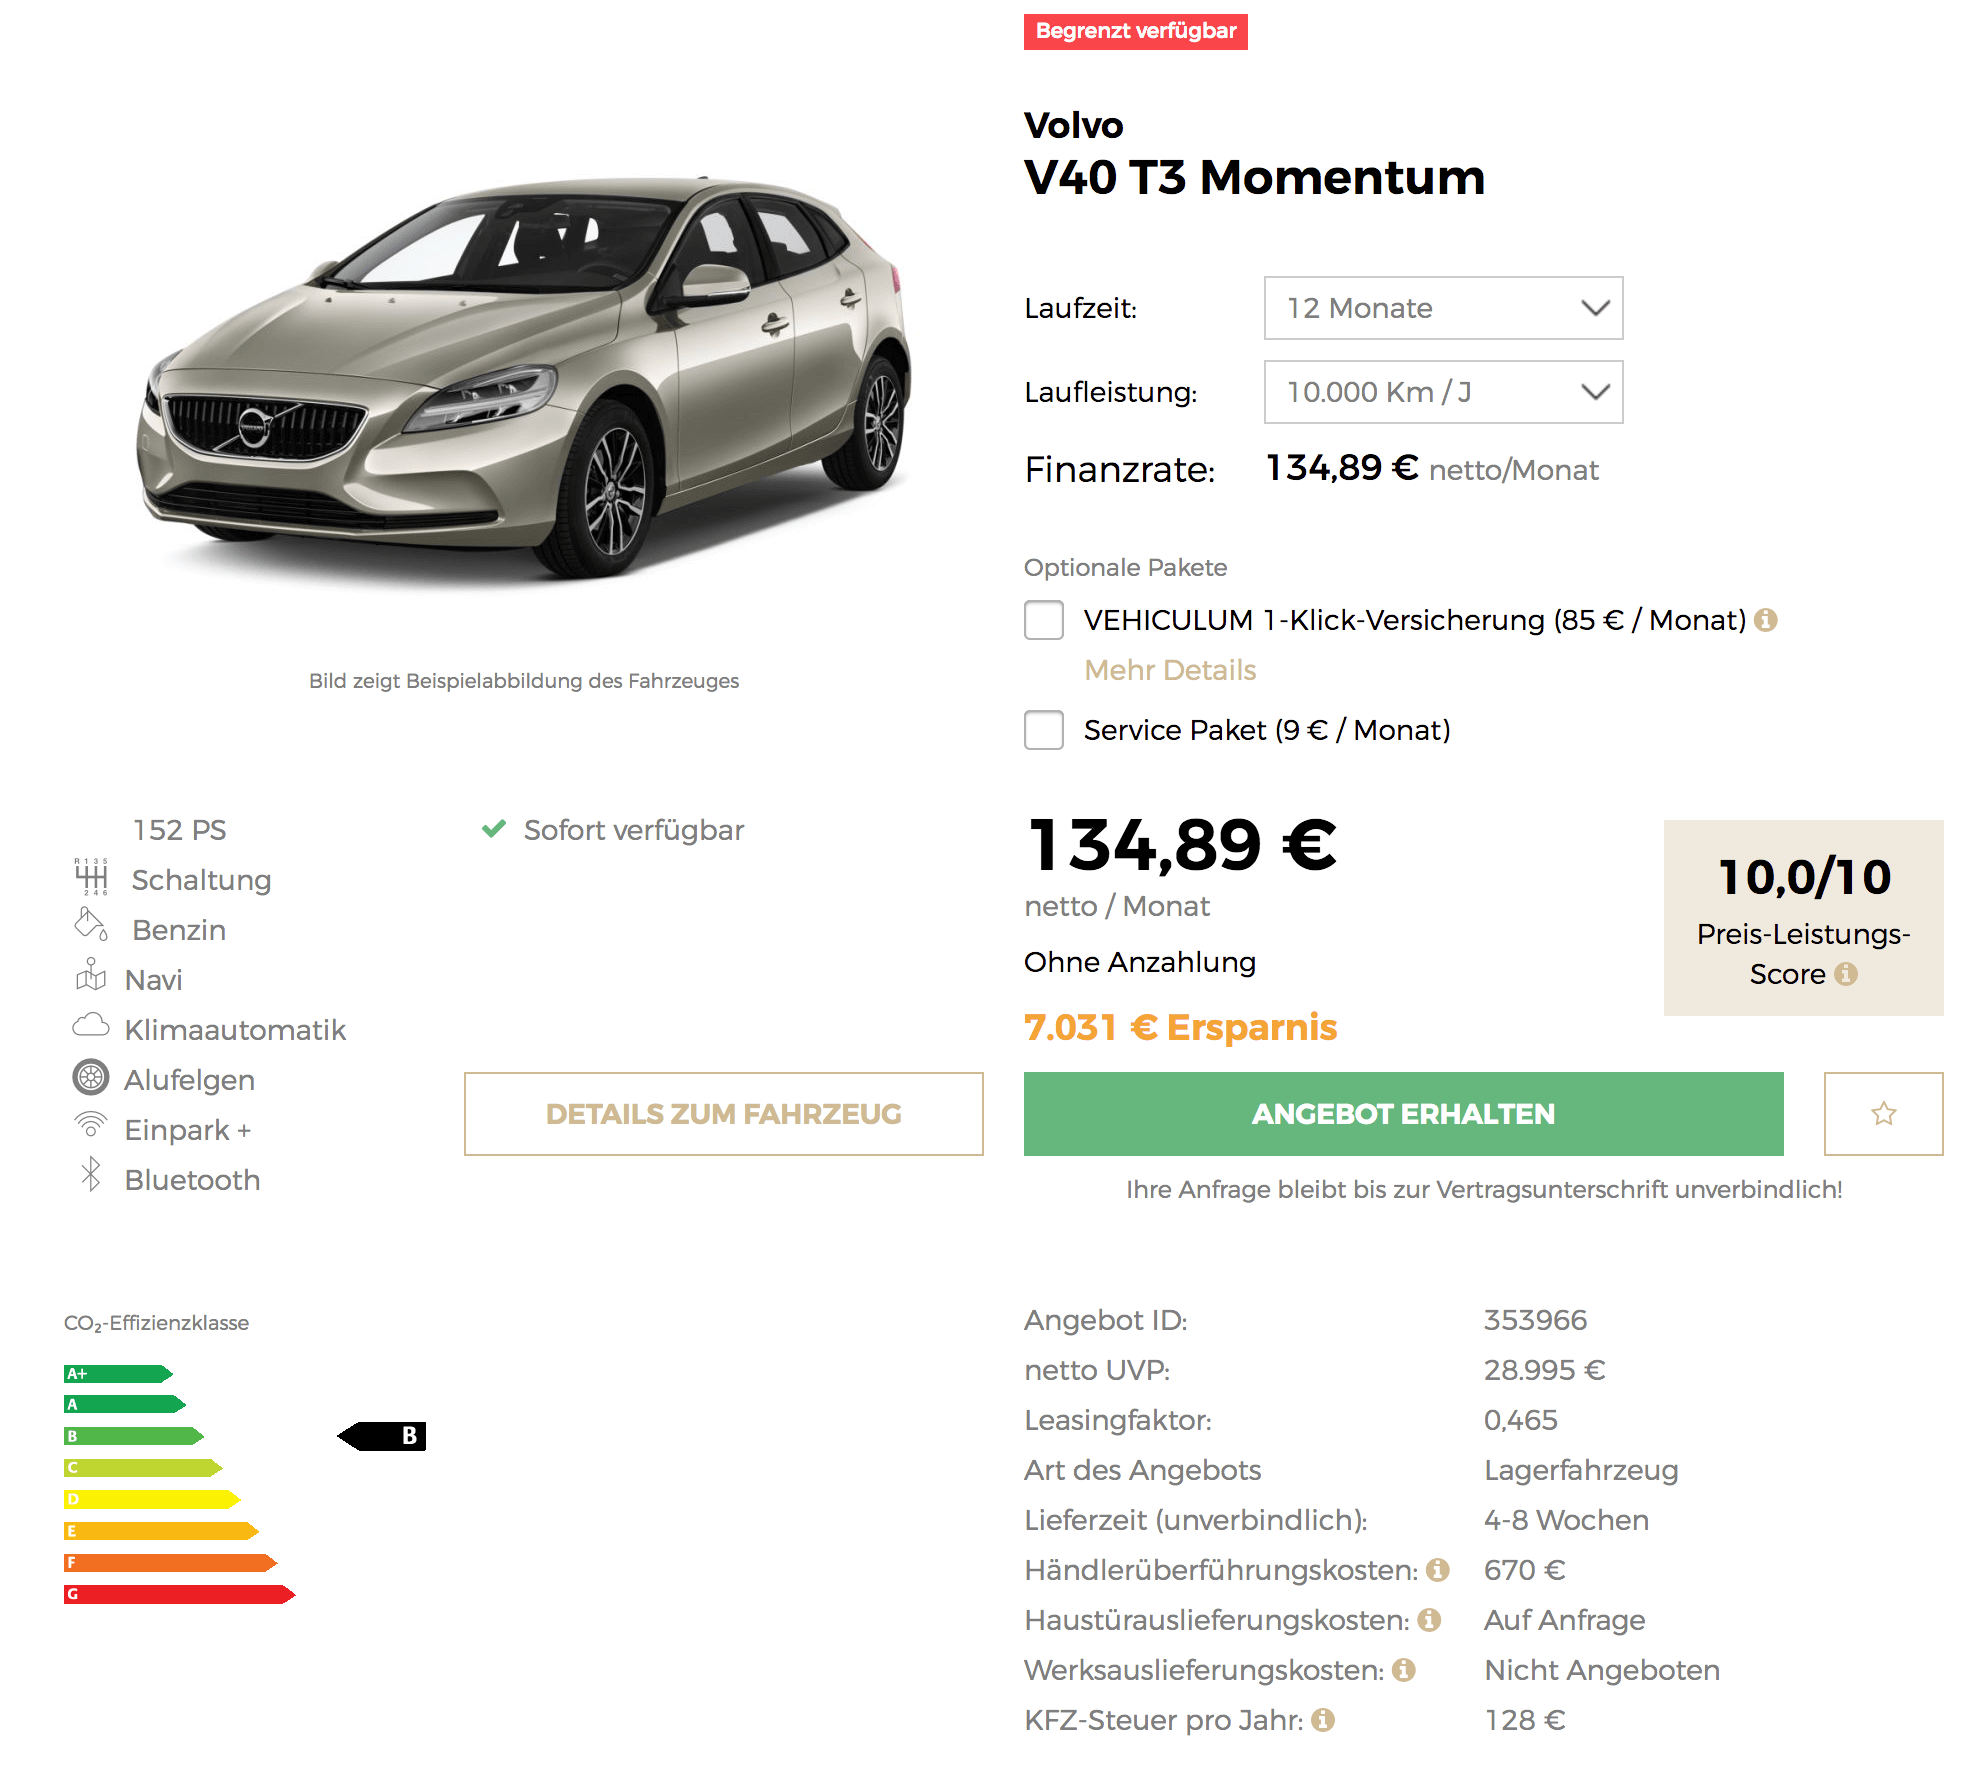 hot volvo v40 t3 momentum leasing f r 135 euro im monat. Black Bedroom Furniture Sets. Home Design Ideas